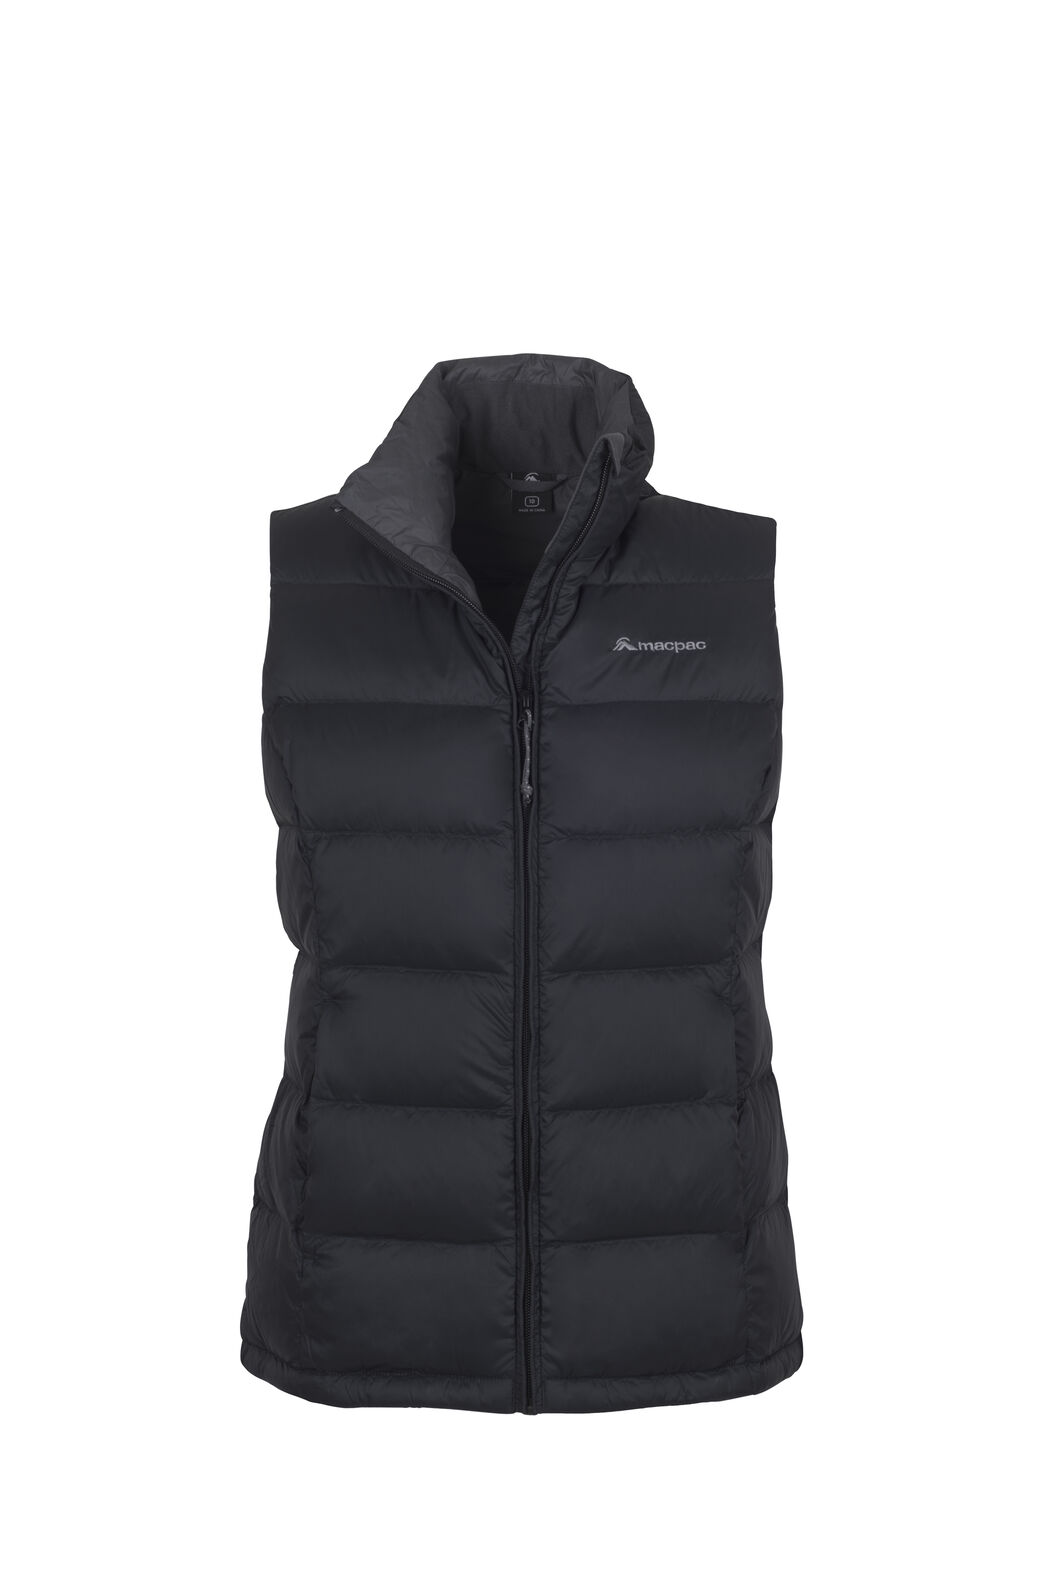 Macpac Halo Down Vest - Women's, Black, hi-res